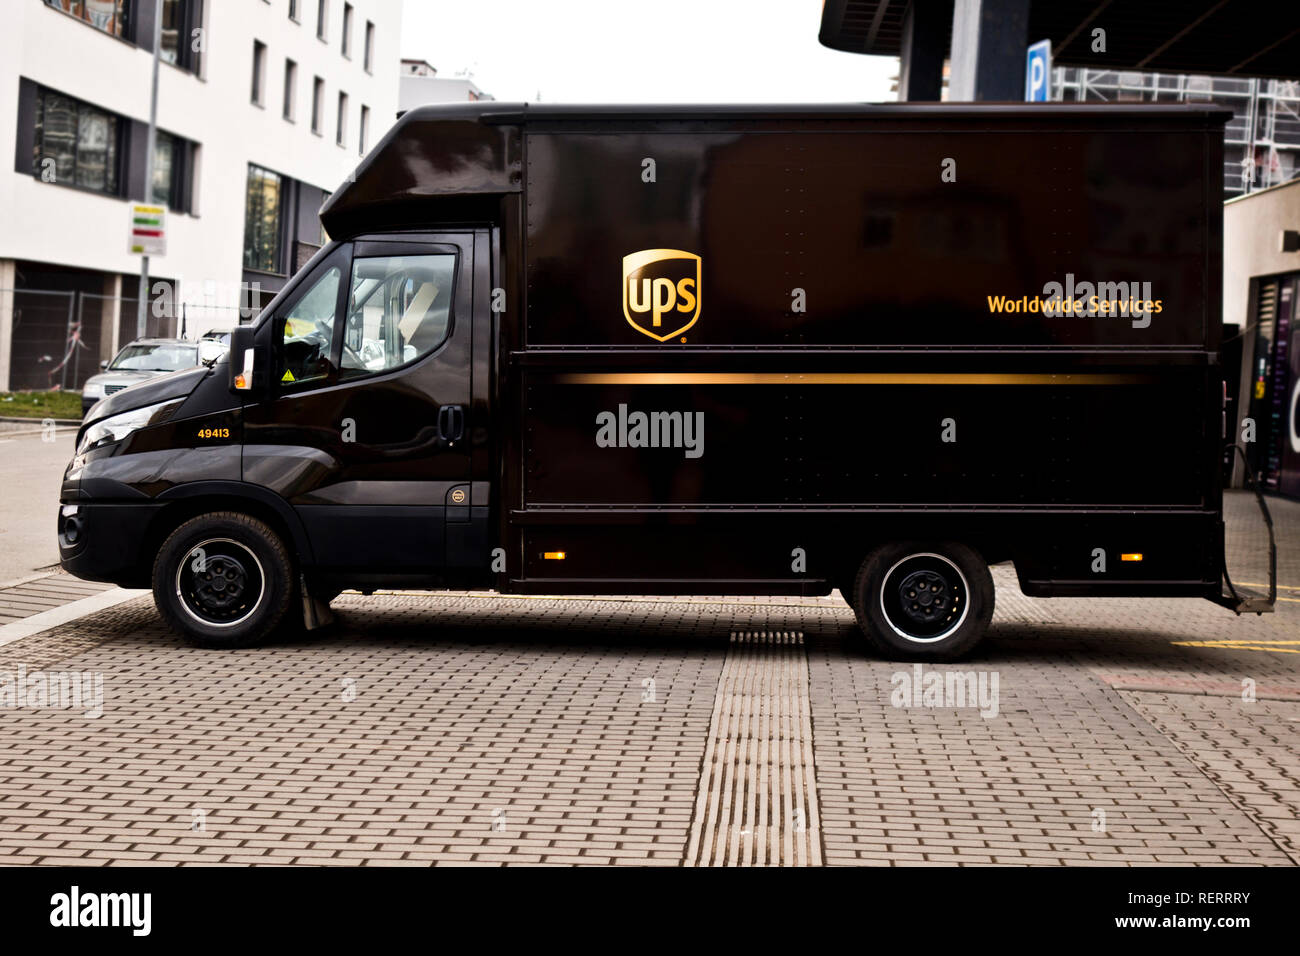 UPS truck for delivery - Stock Image